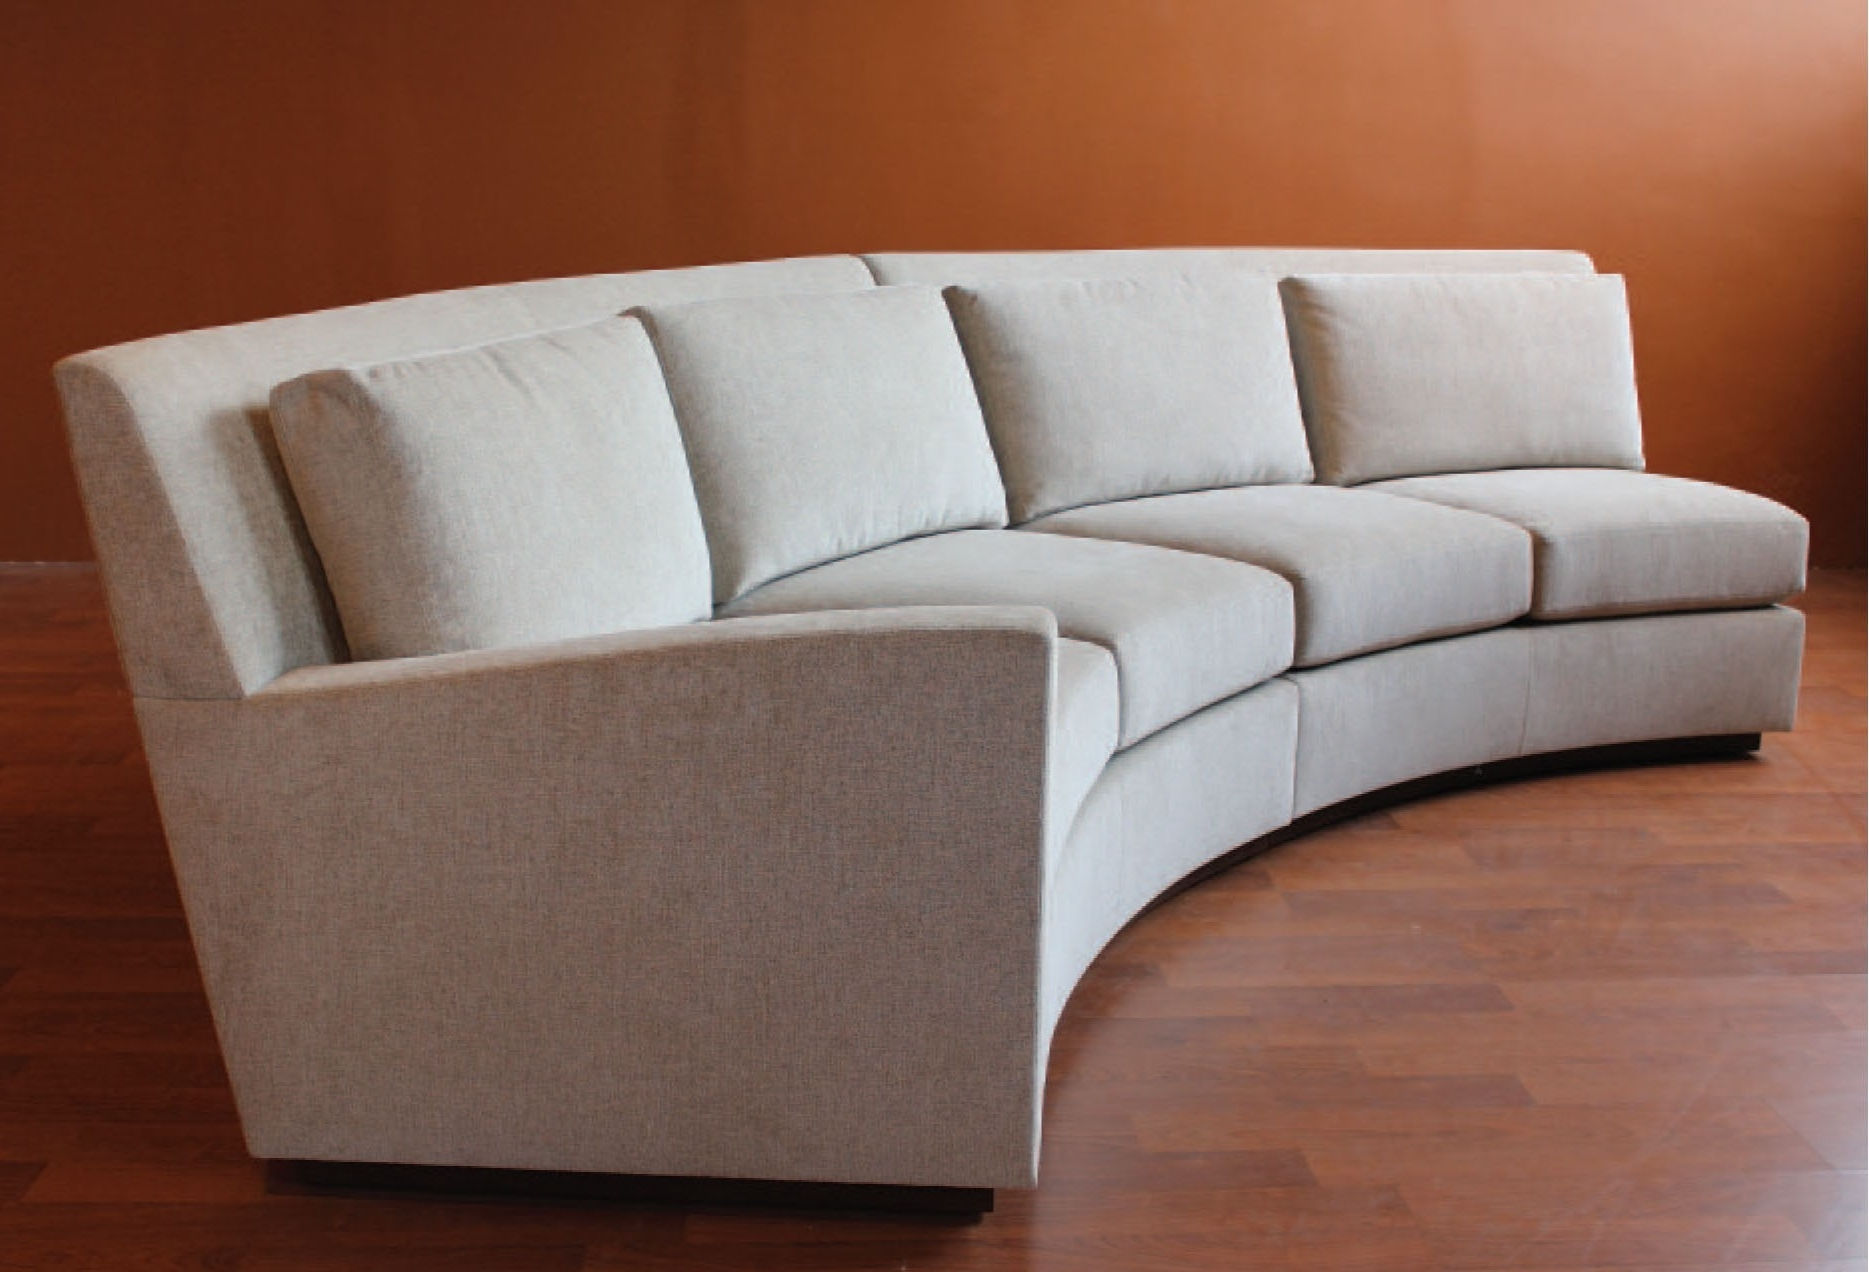 Modern Curved Sofa With Sectional Circular Sofas Round Sectionals Within 2017 Rounded Sofas (View 14 of 15)